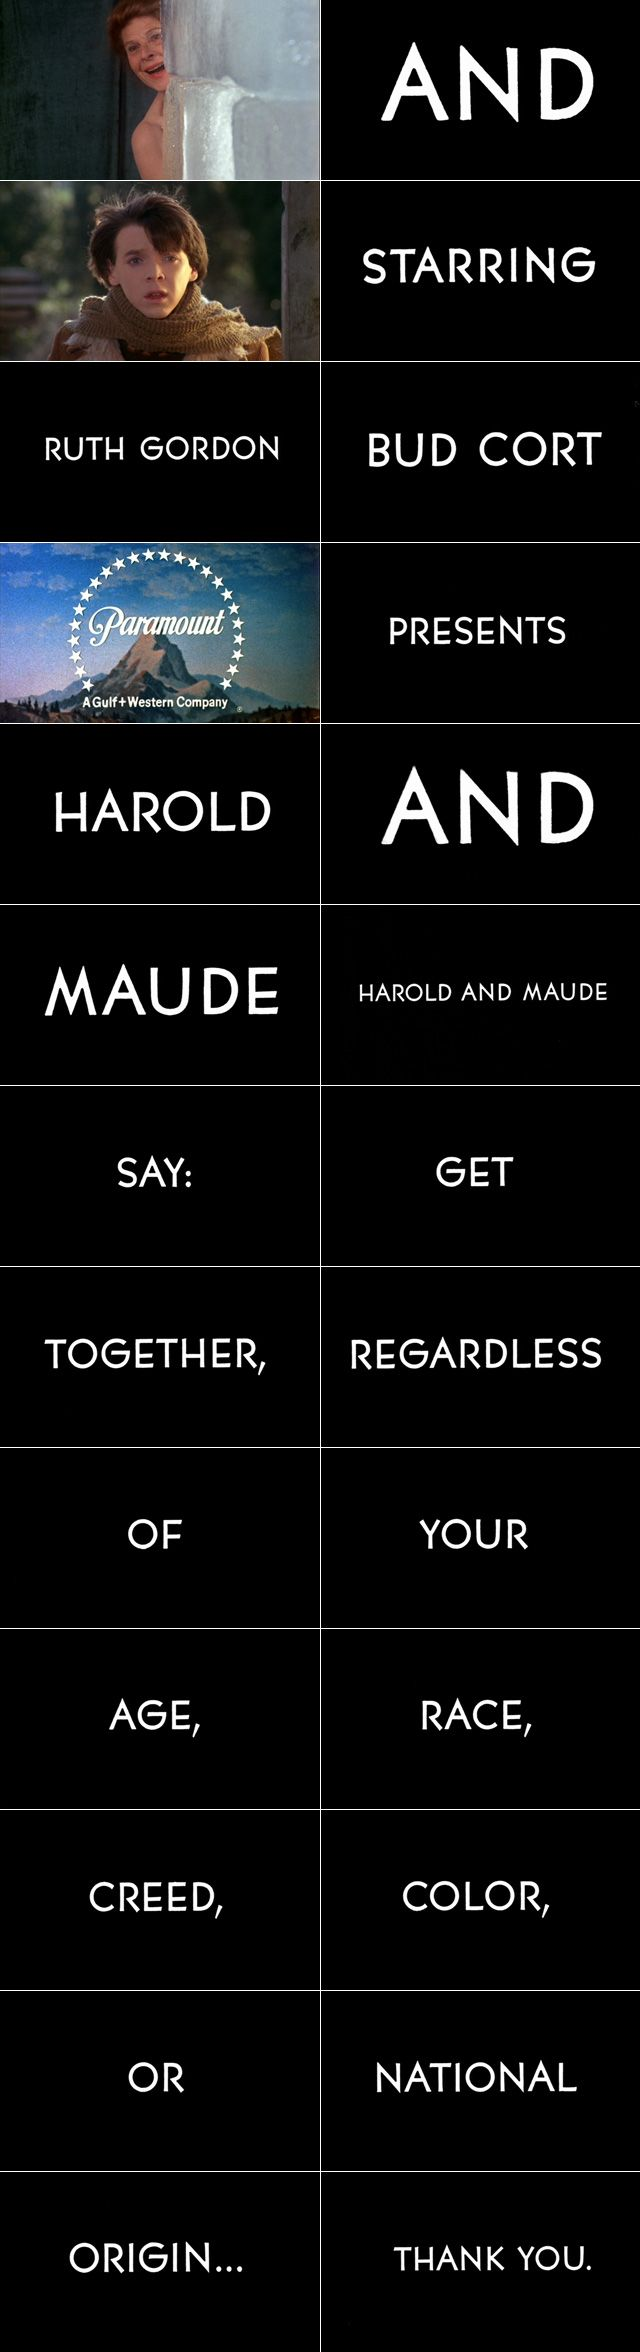 Harold and Maude (1971) trailer typography – the Movie title stills collection ✇ 'HAROLD AND MAUDE' (1971), directed by Hal Ashby, starring Ruth Gordon, Bud Cort, Vivian Pickles, Cyril Cusack